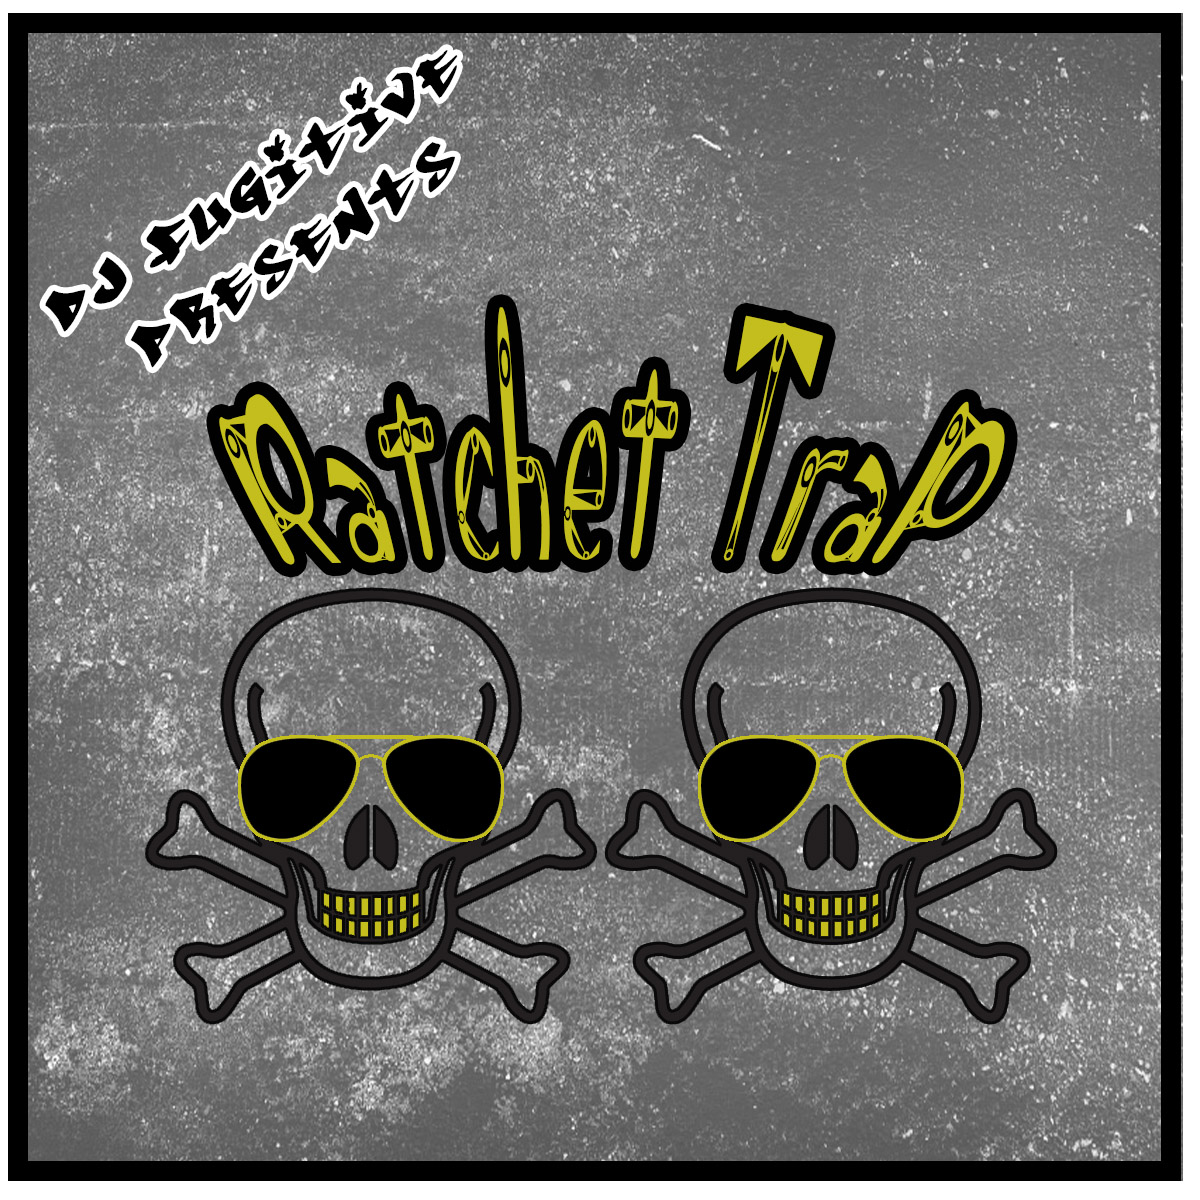 Dj Fugitive – Ratchet Trap